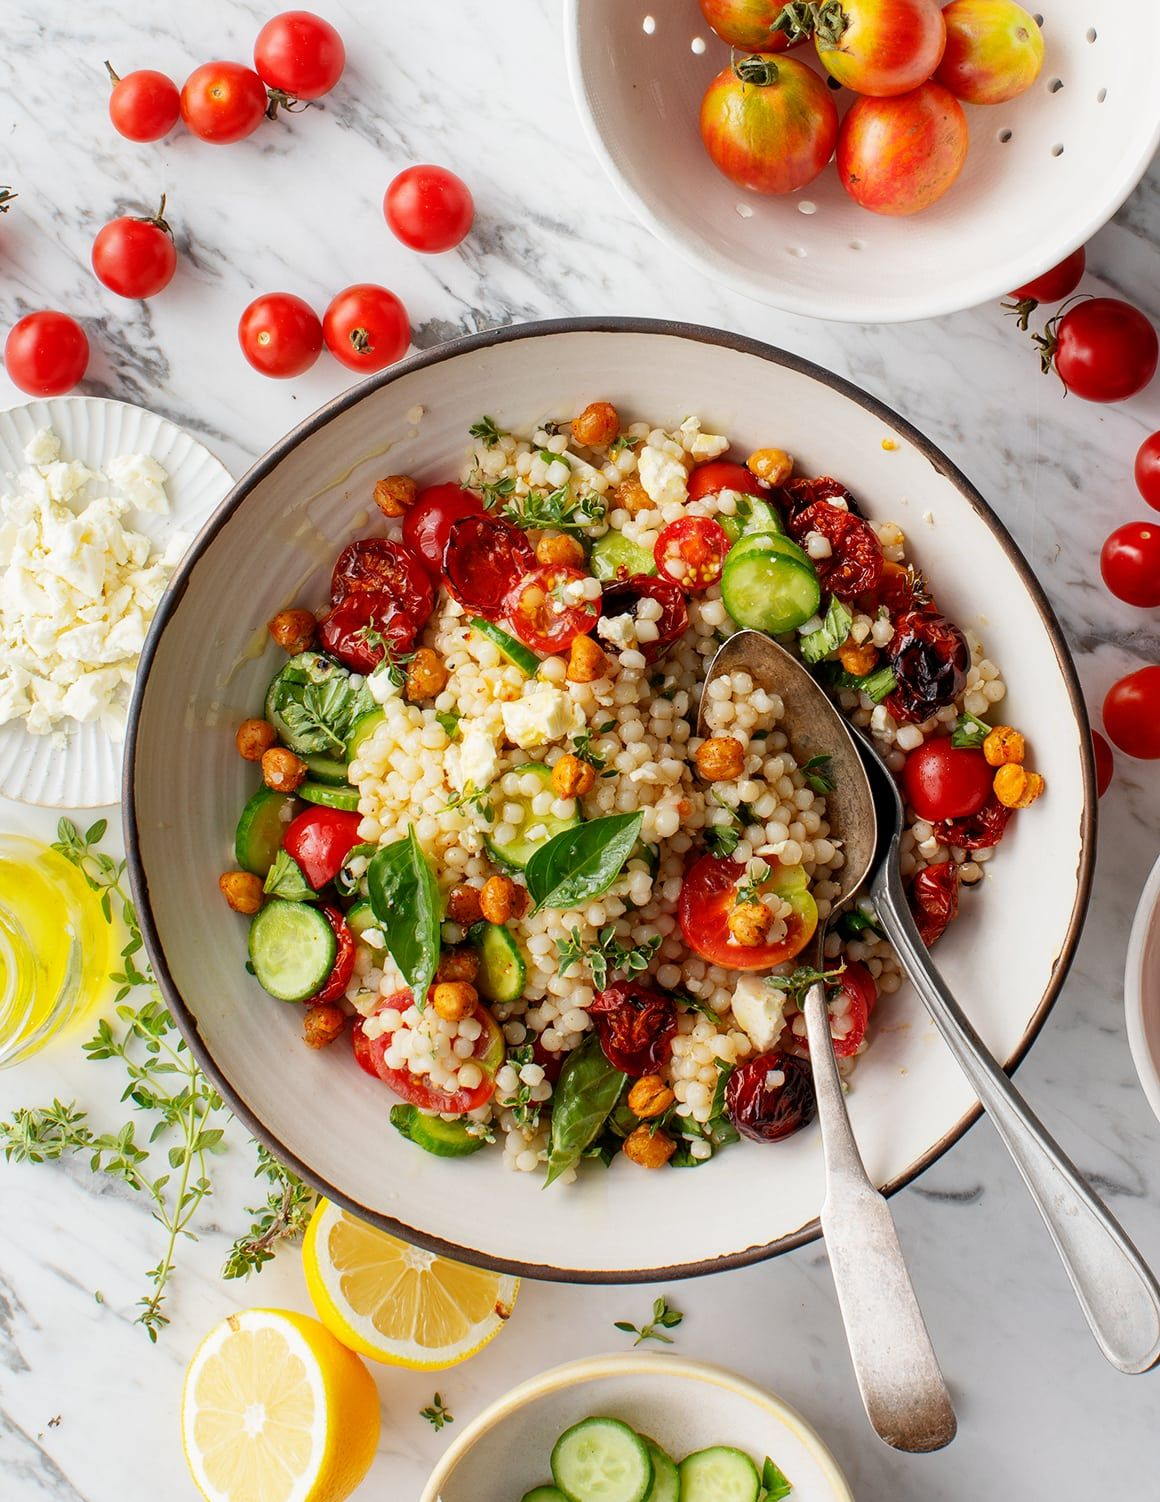 Admit It: Your Salad Needs A Makeover